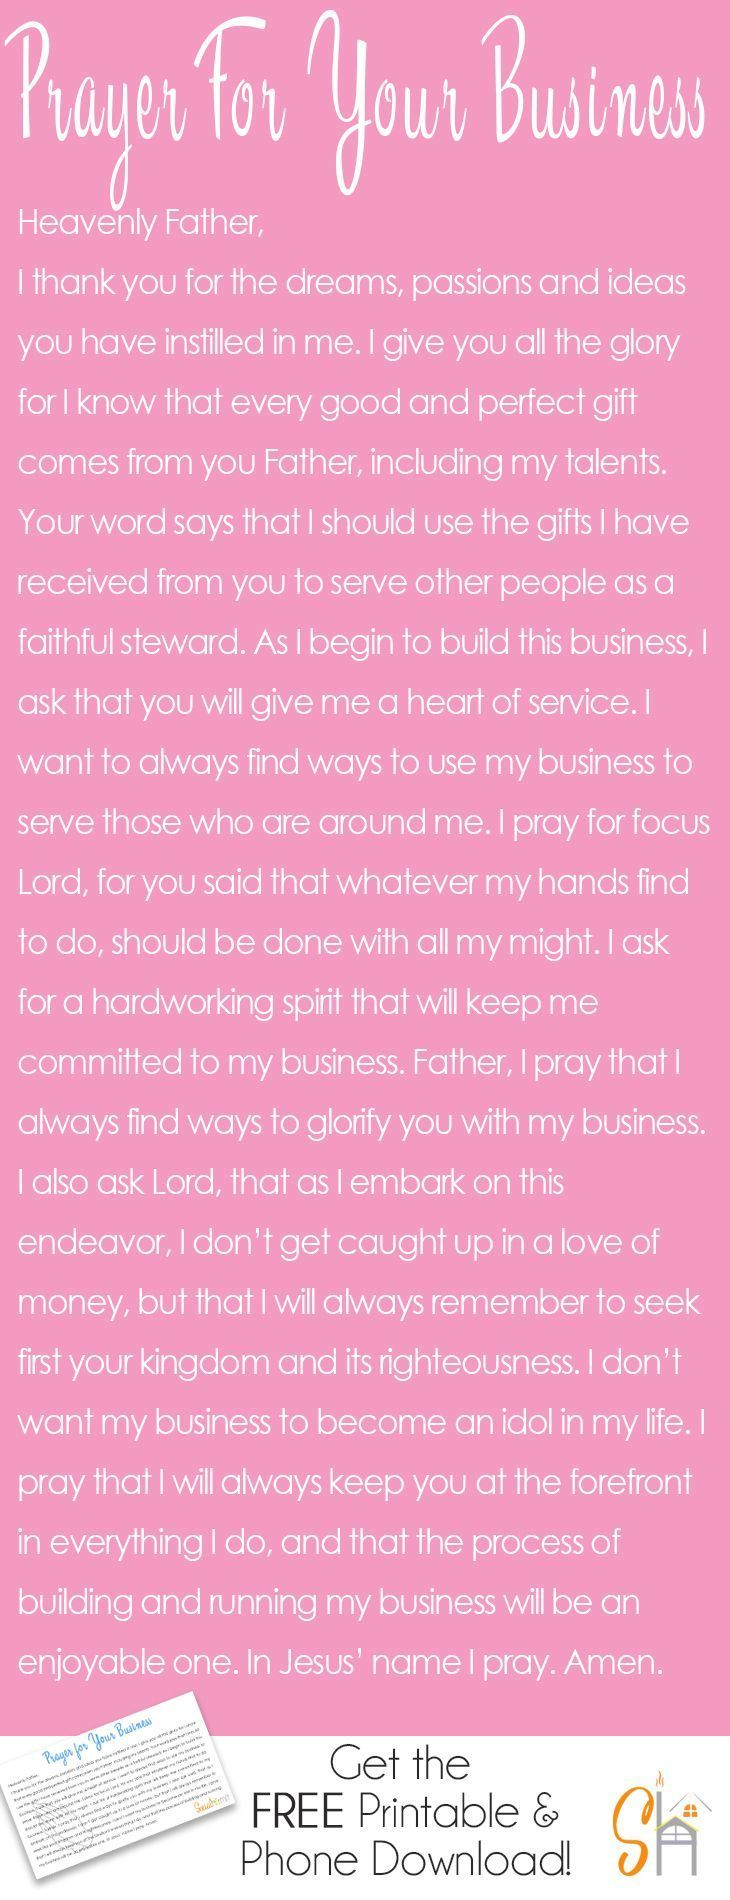 Working on building a business really requires guidance from the Lord. We need his guidance to show us what path to take and what moves to make. This prayer for your business was written to inspire you to lean on him always. Click through for a FREE mobil